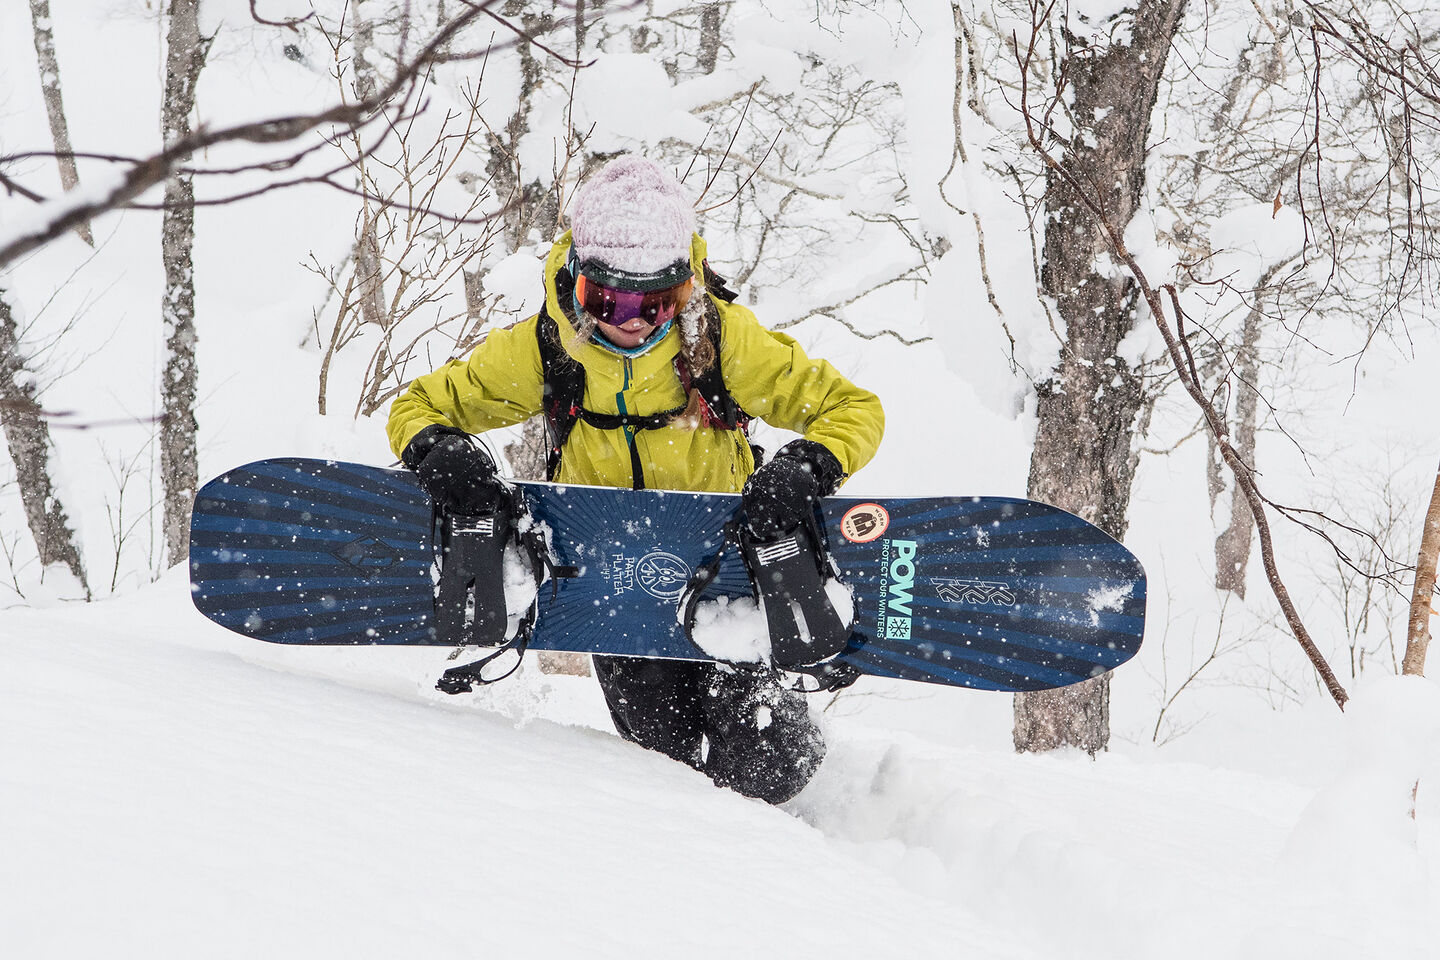 woman carrying snowboard in powder